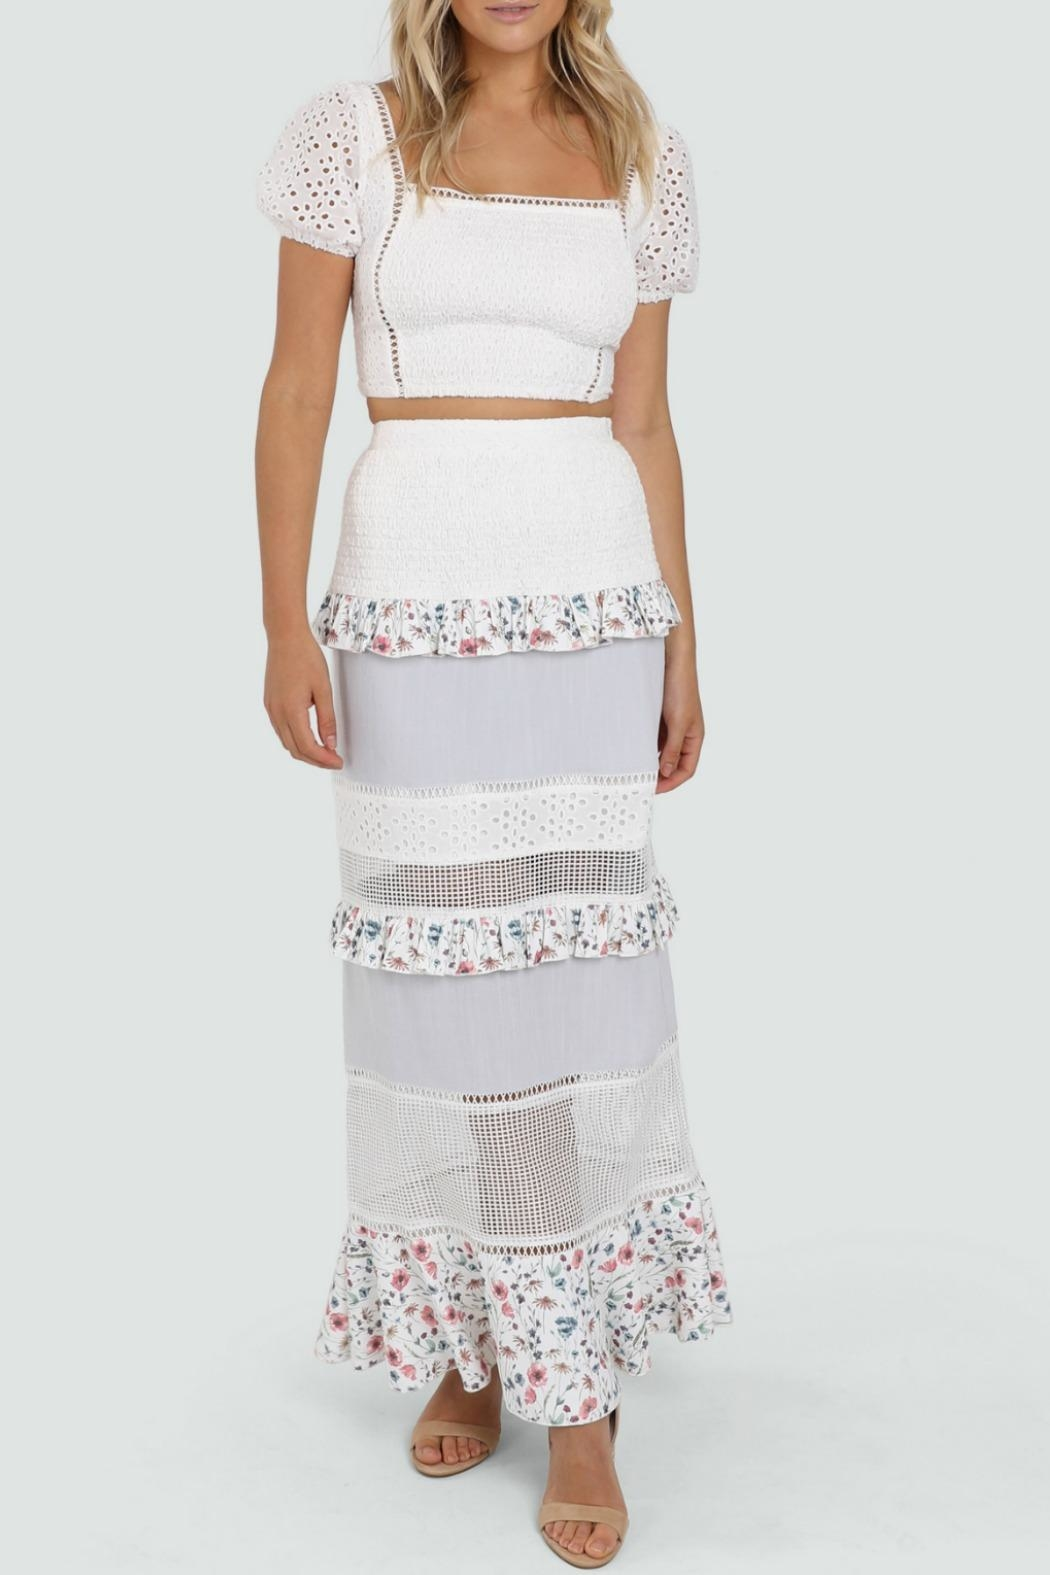 Lost in Lunar Florance Maxi Skirt - Main Image